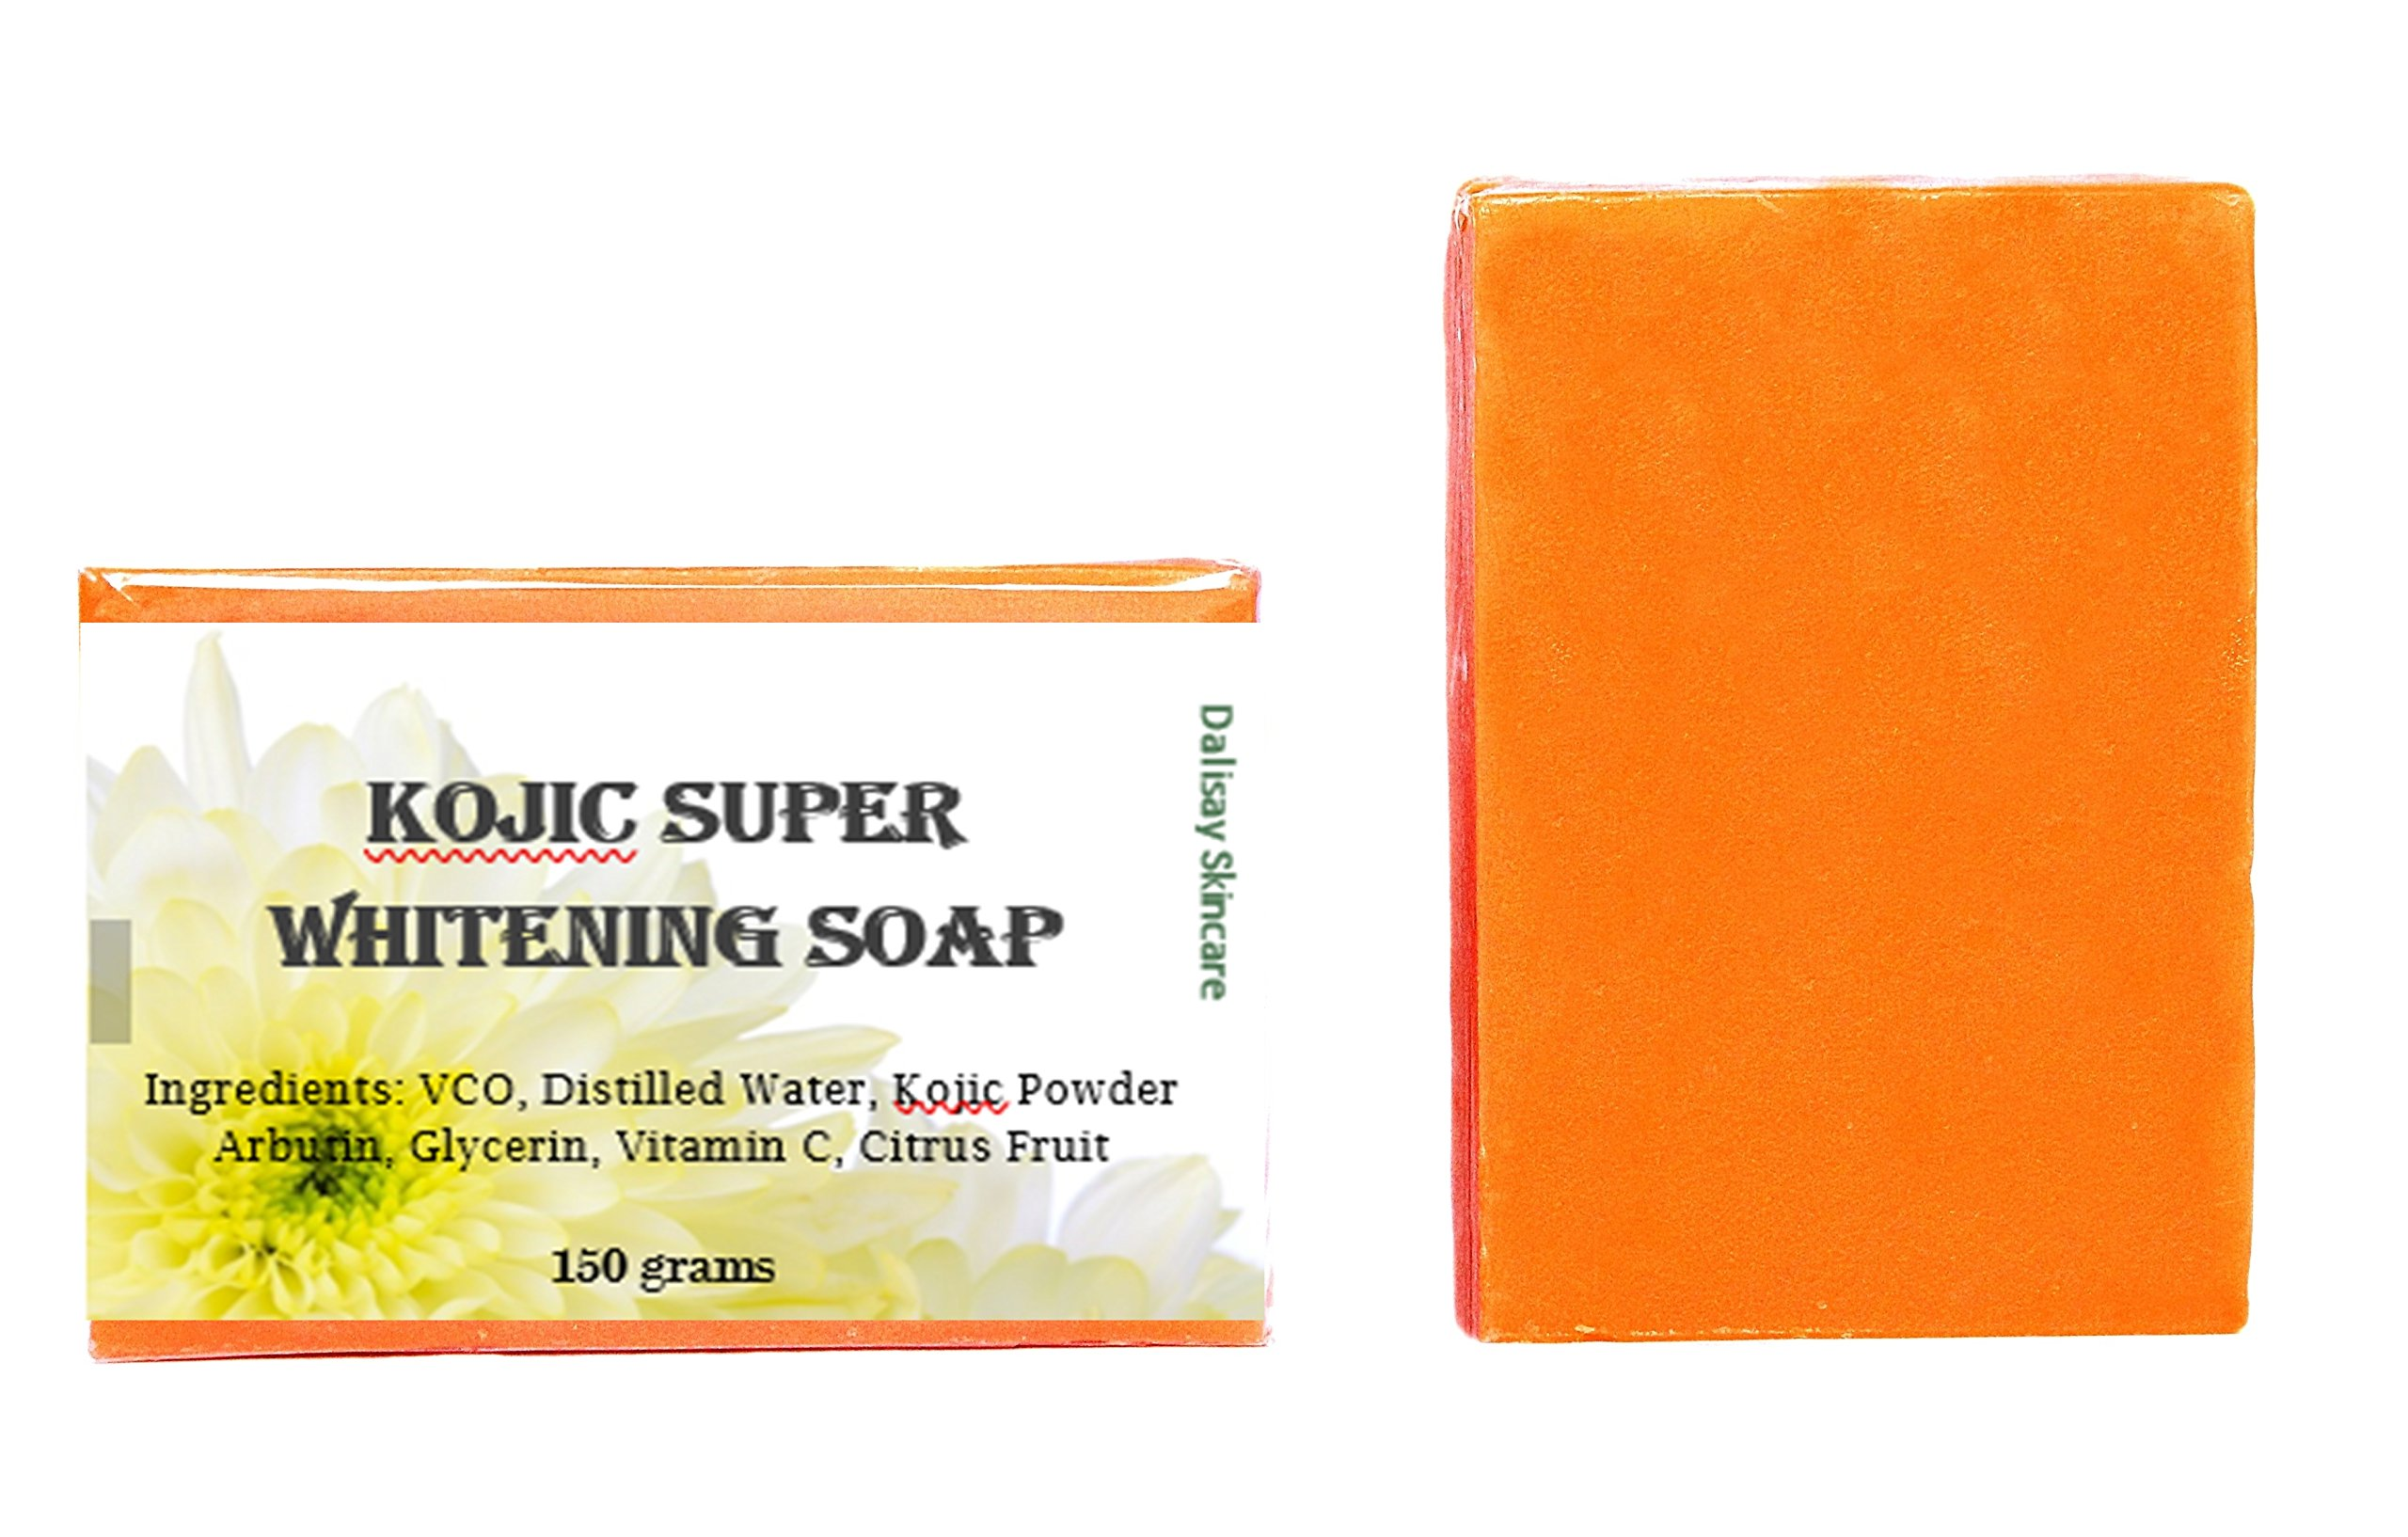 Cheap Kojic Soap Acne, find Kojic Soap Acne deals on line at Alibaba com